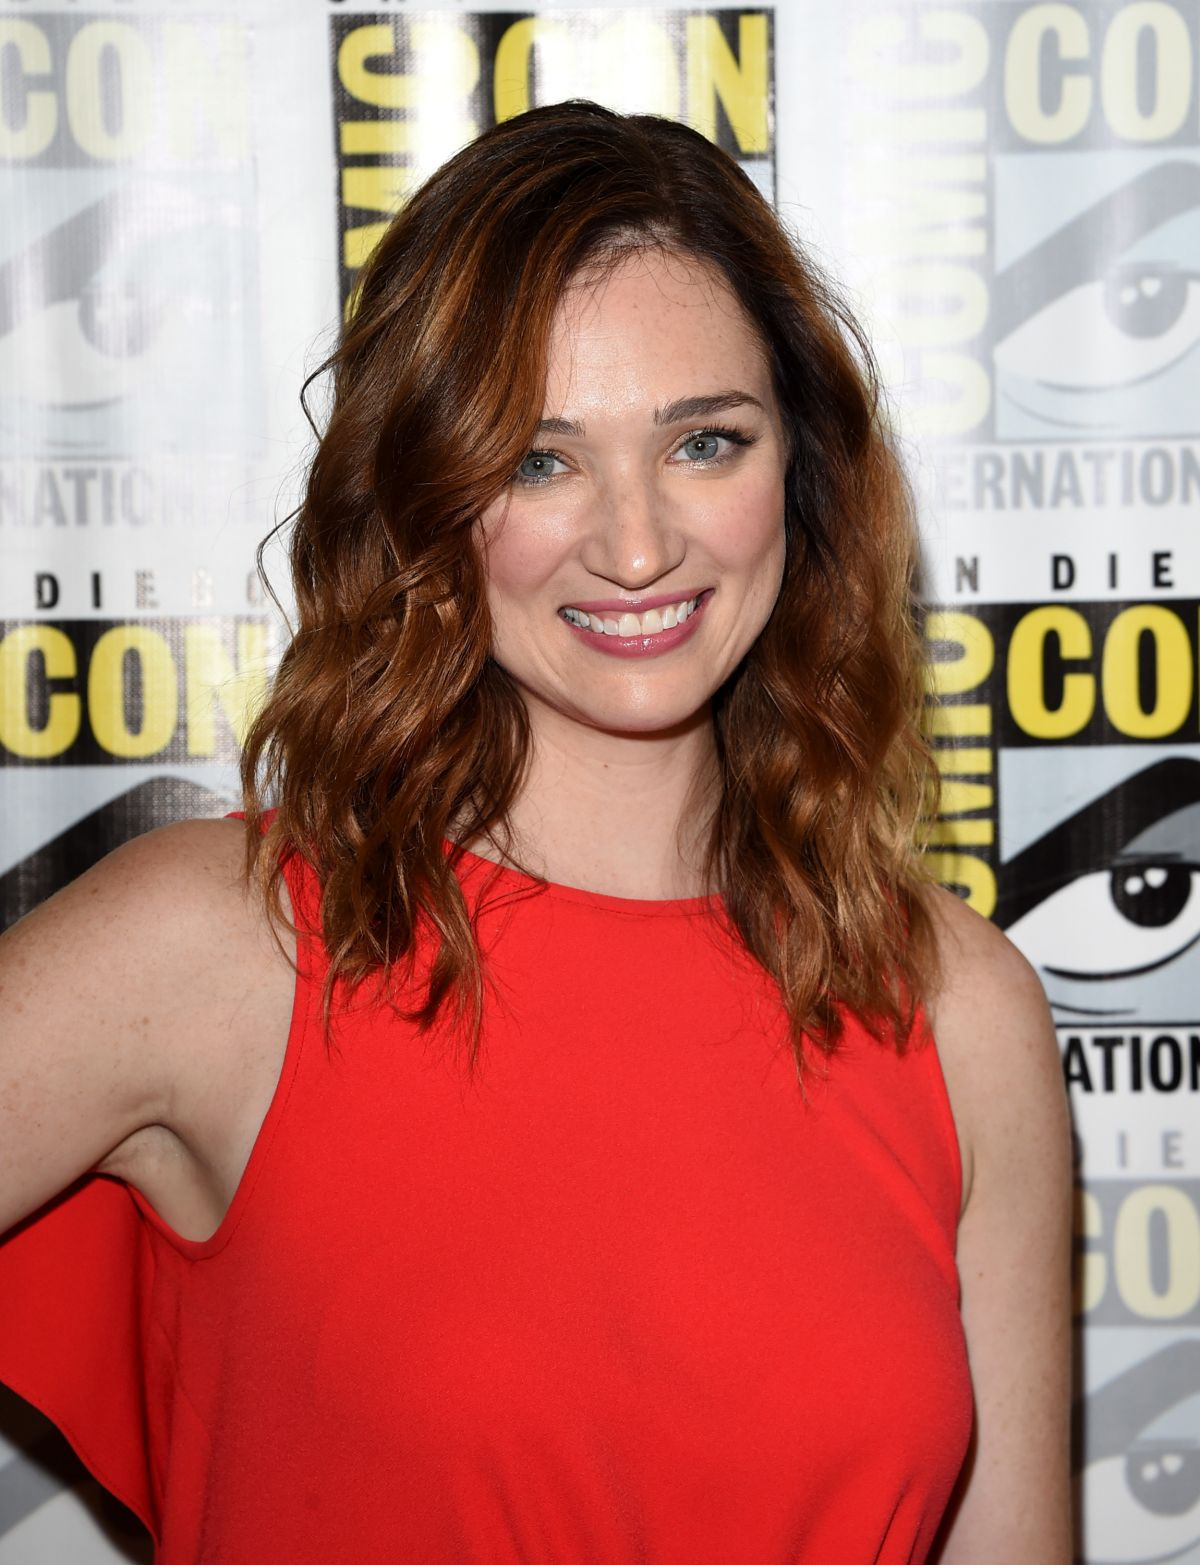 KRISTEN CONNOLLY at Zoo Presentation at Comic Con in San Diego